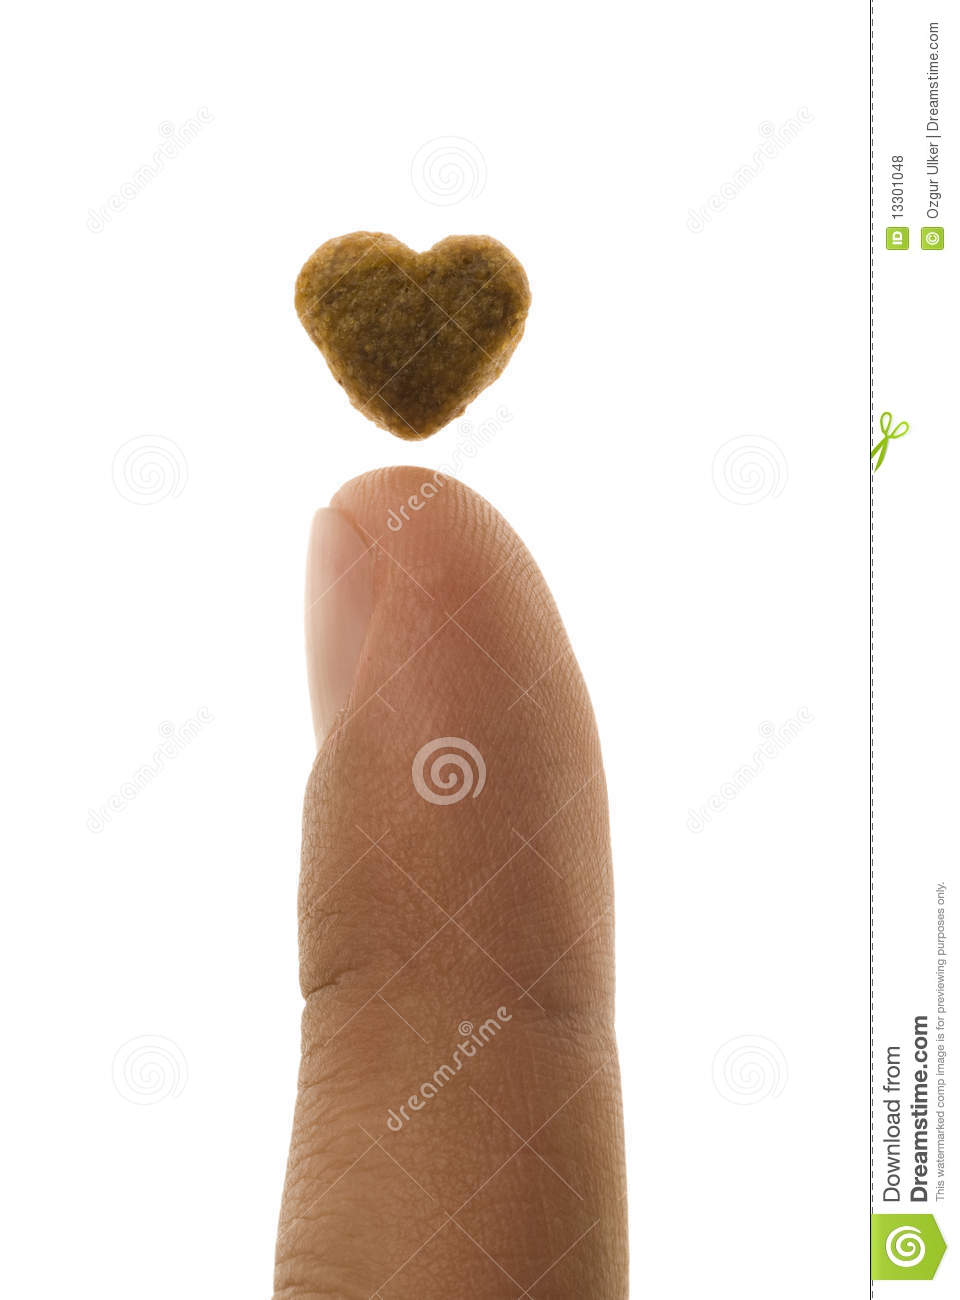 Finger And Heart Shaped Pet Food Royalty Free Stock Photos